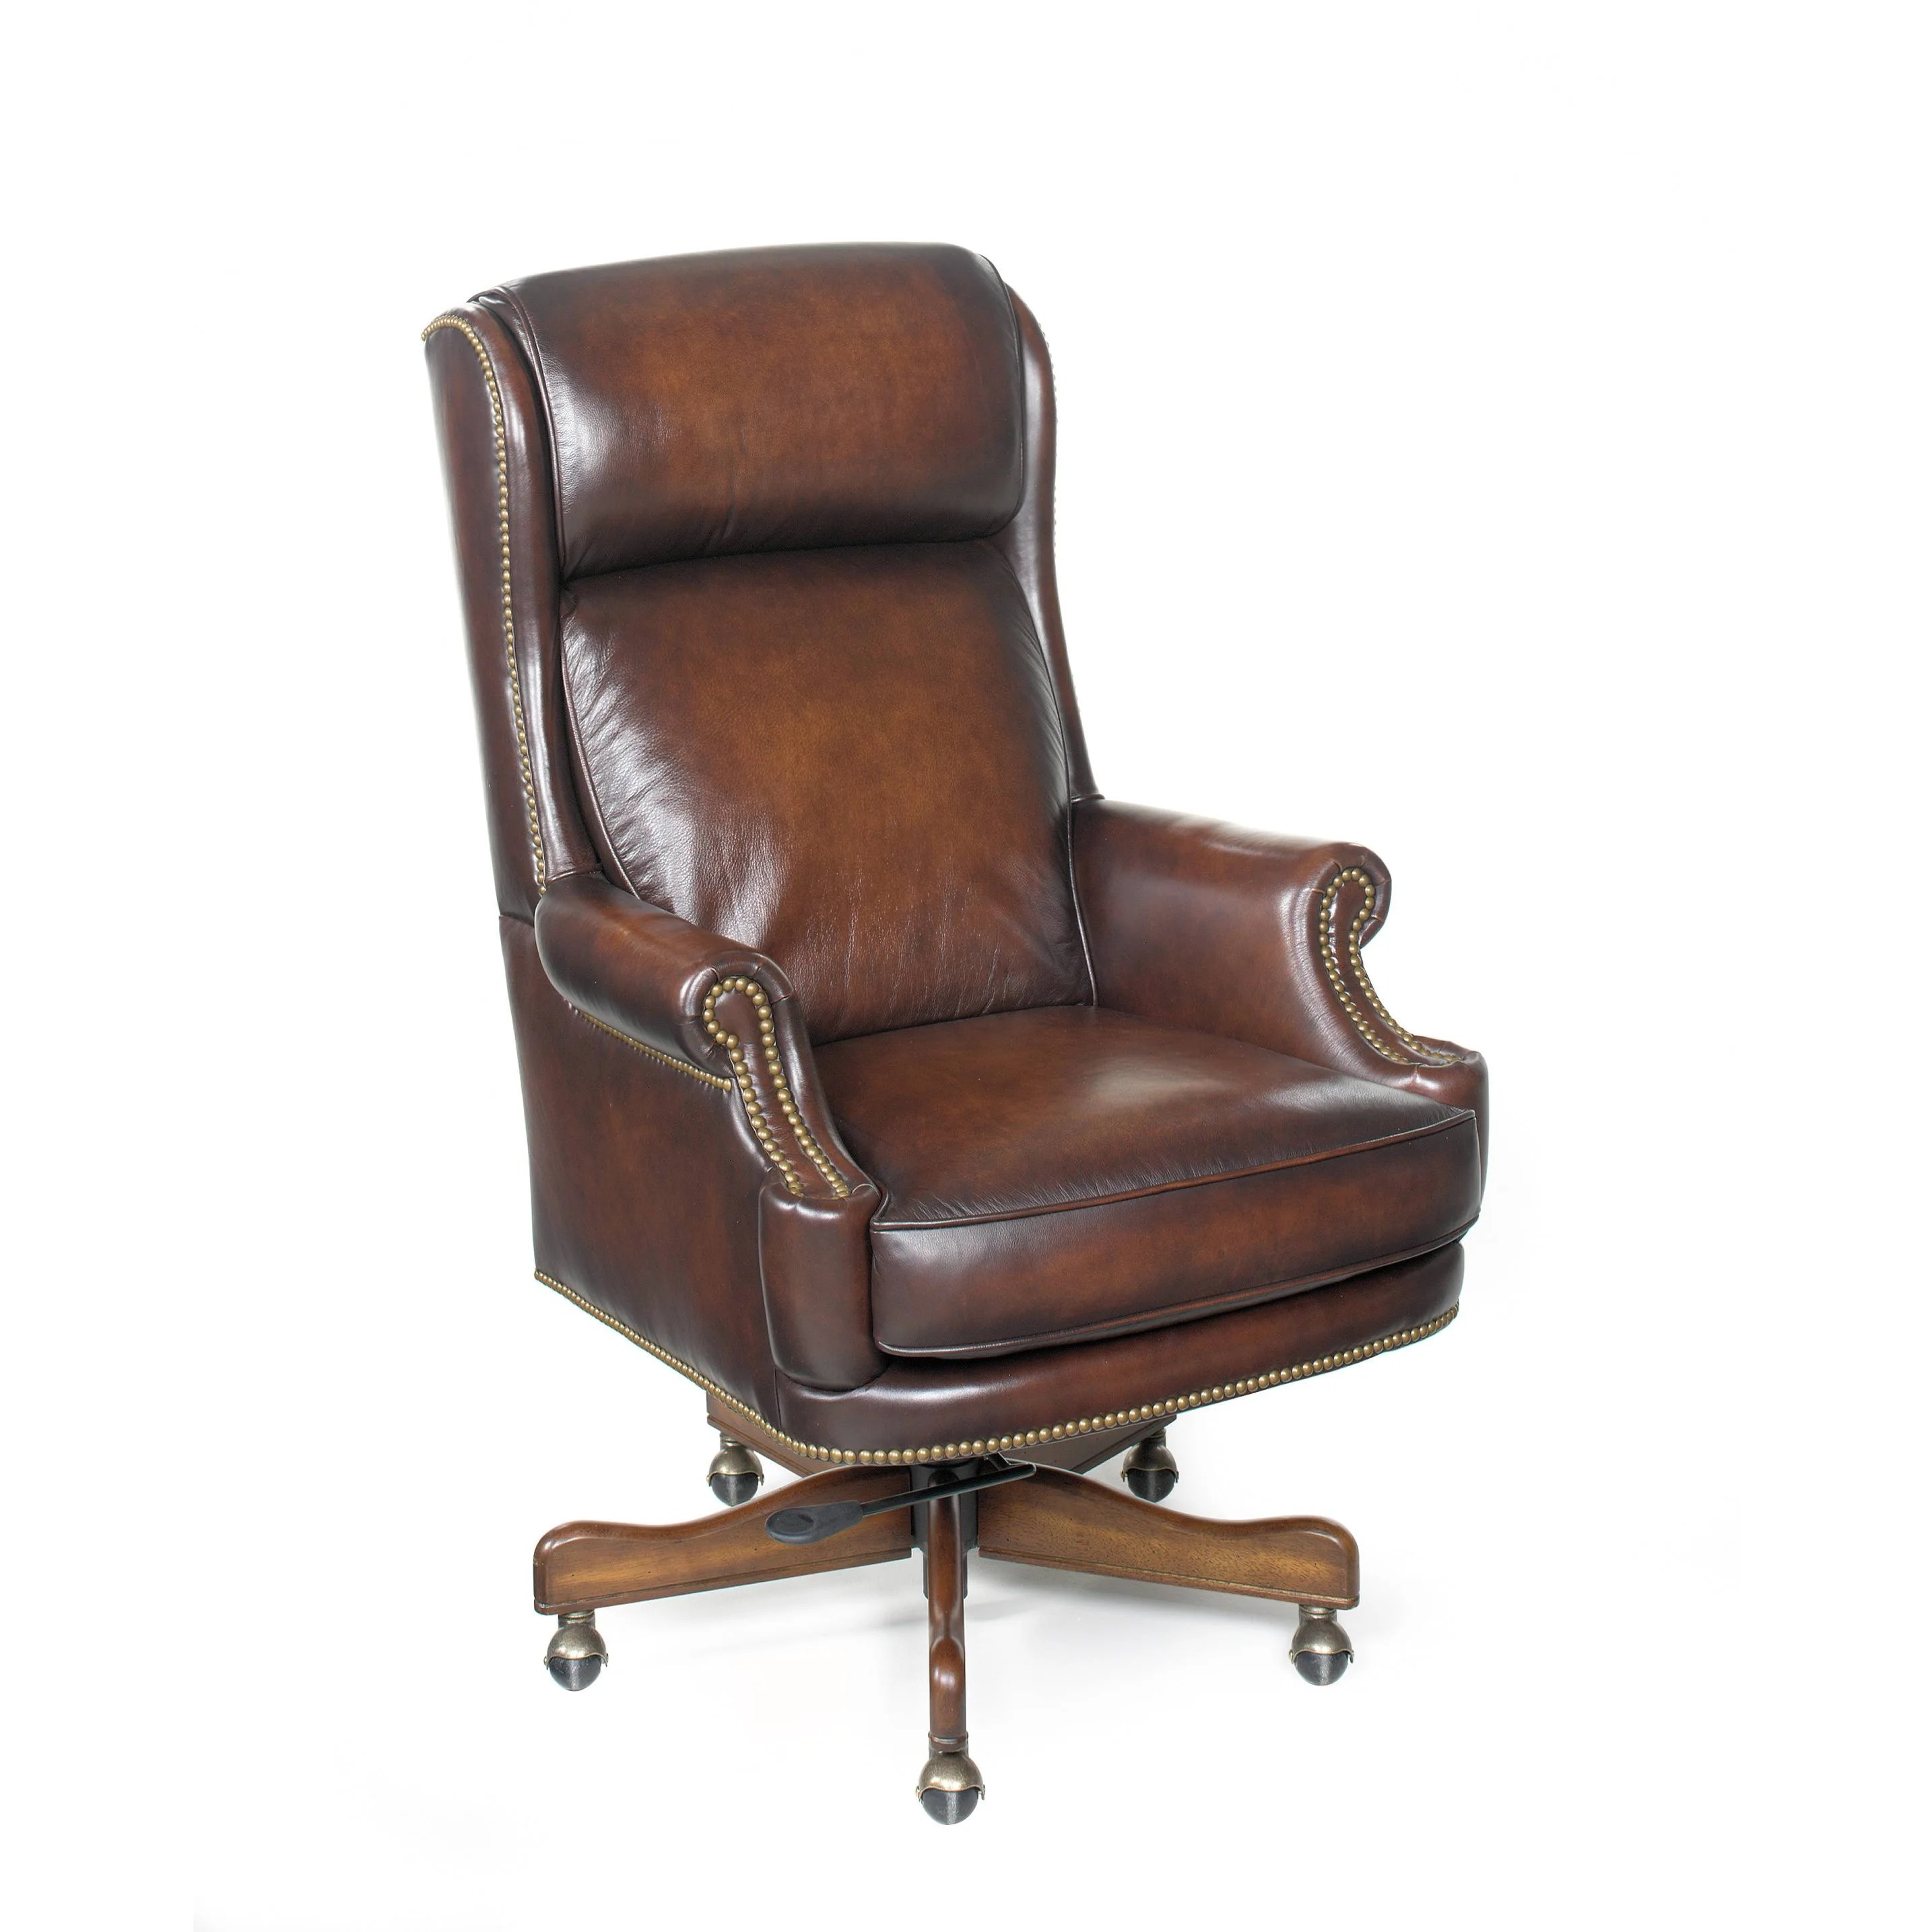 Hooker Leather Chair Hooker Furniture James River Leather Executive Chair Wayfair